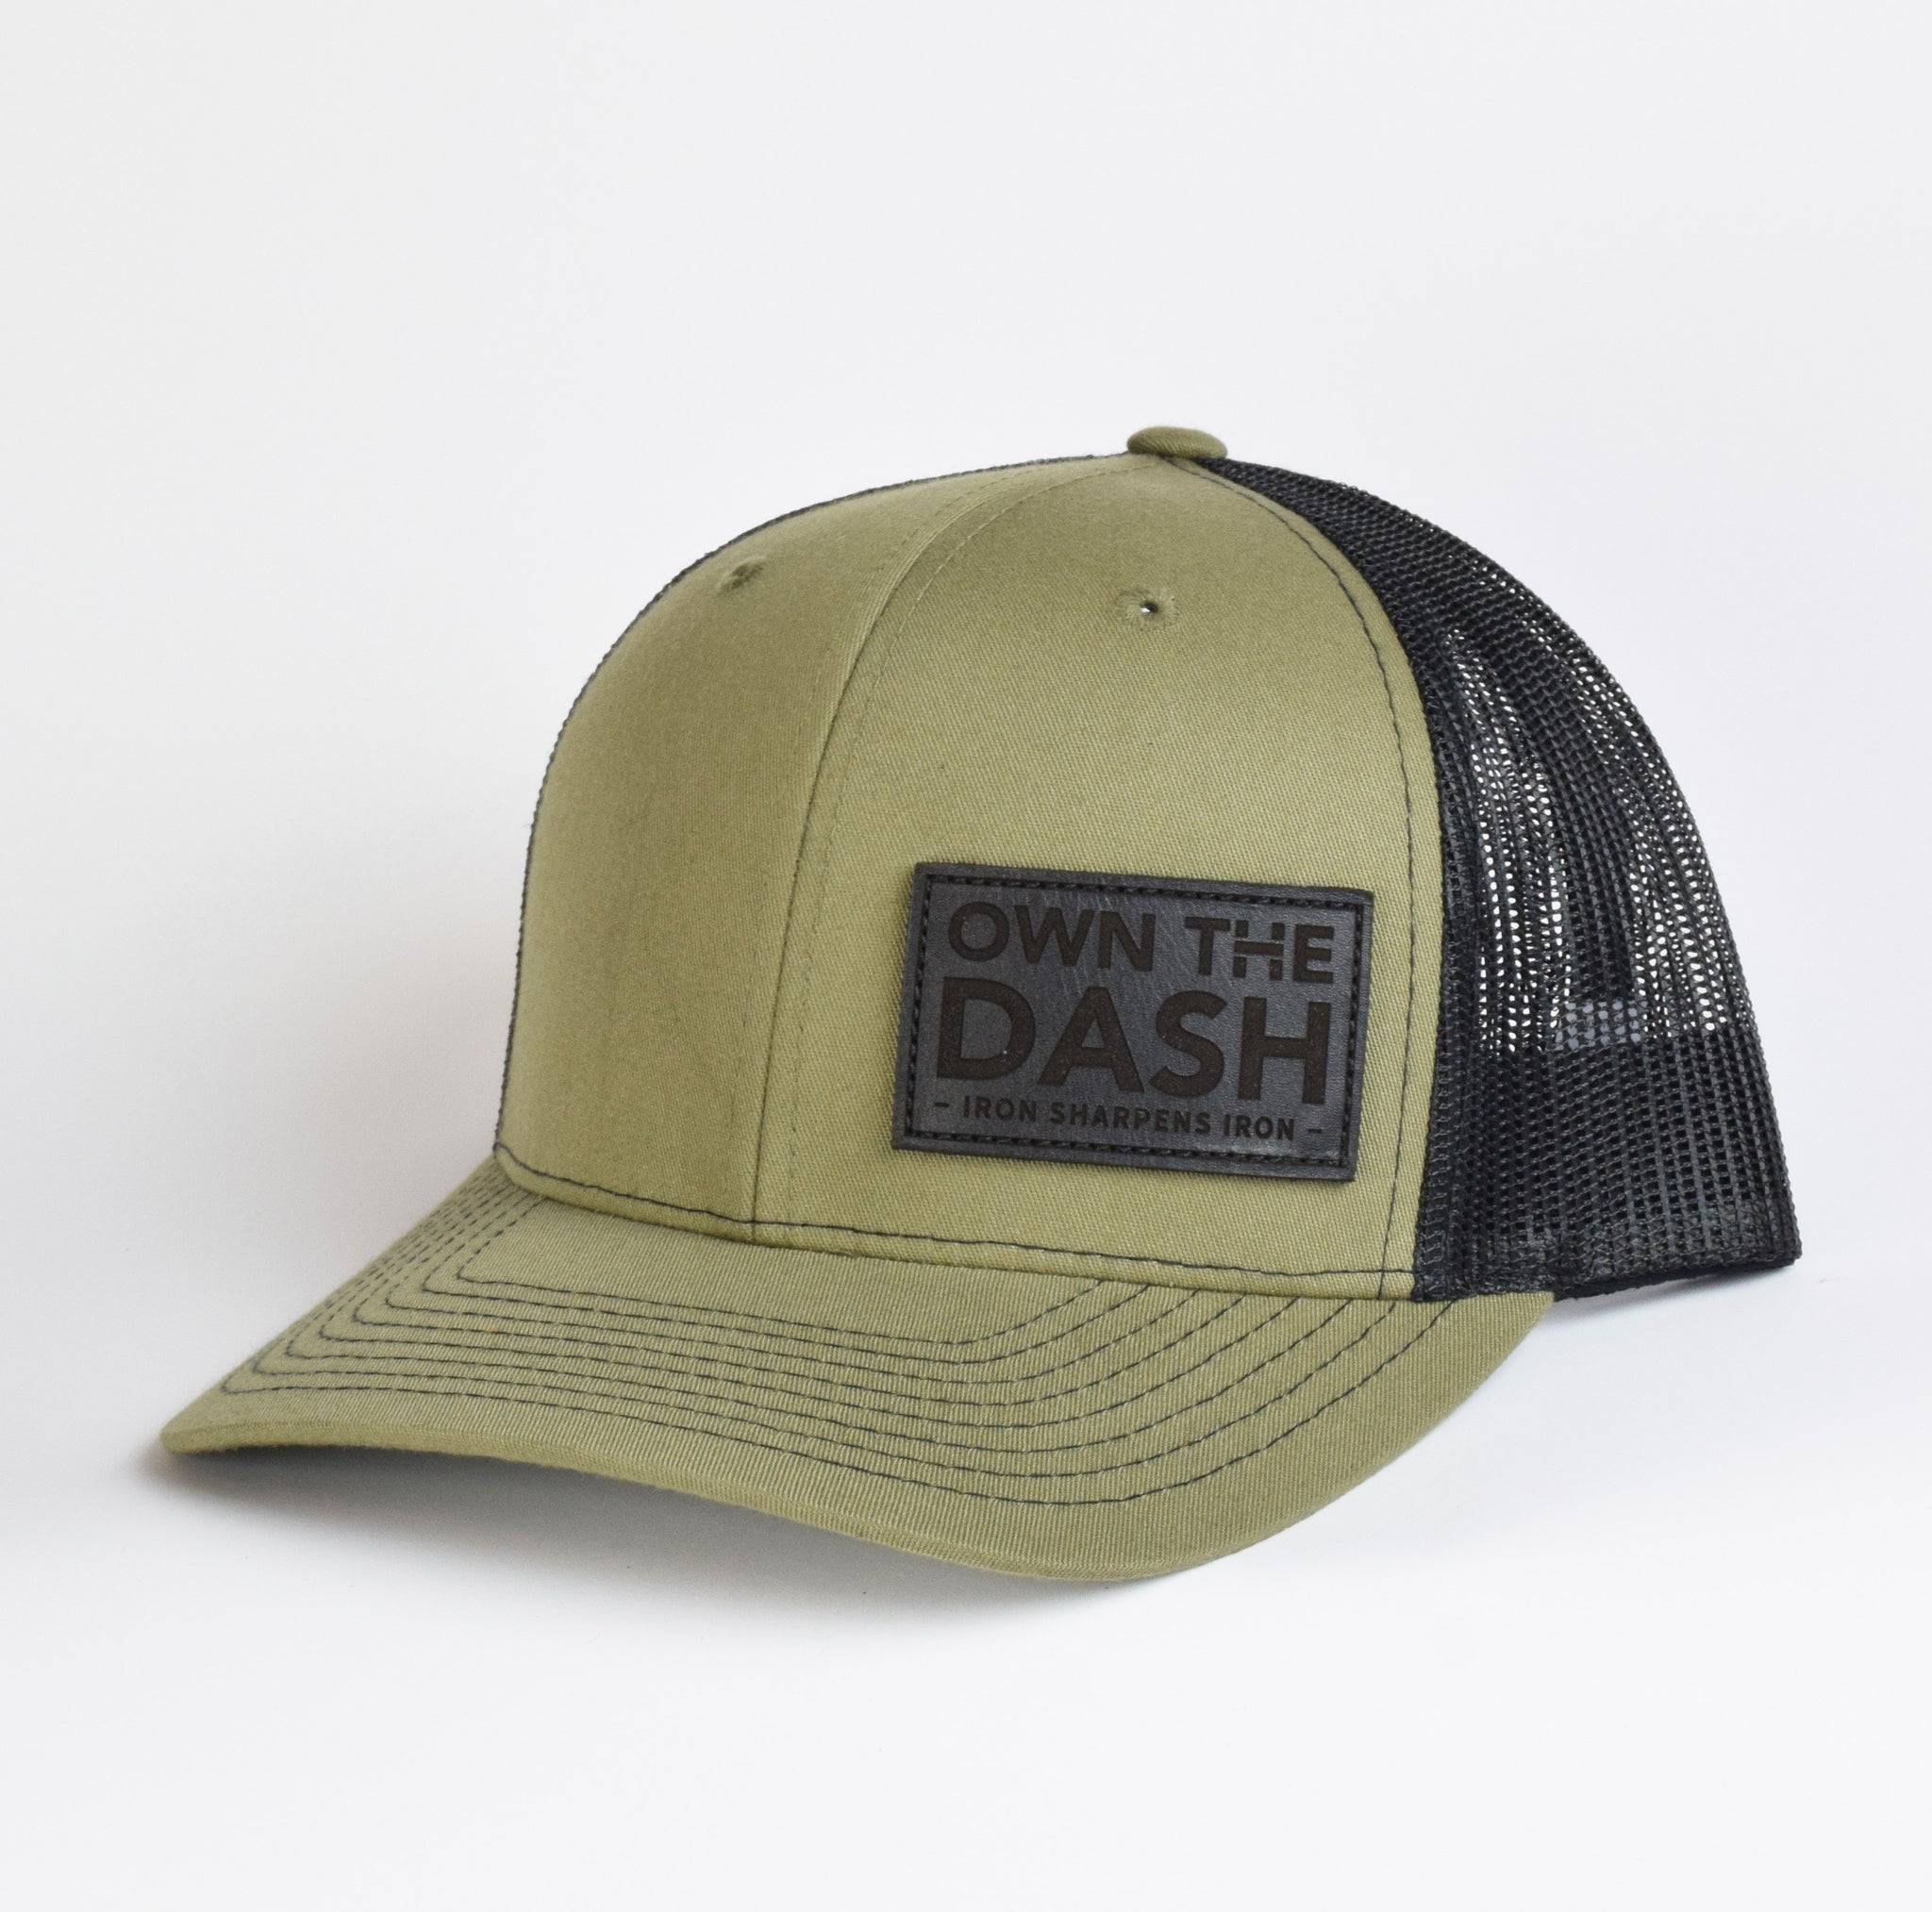 Own The Dash Leather Snap-Back